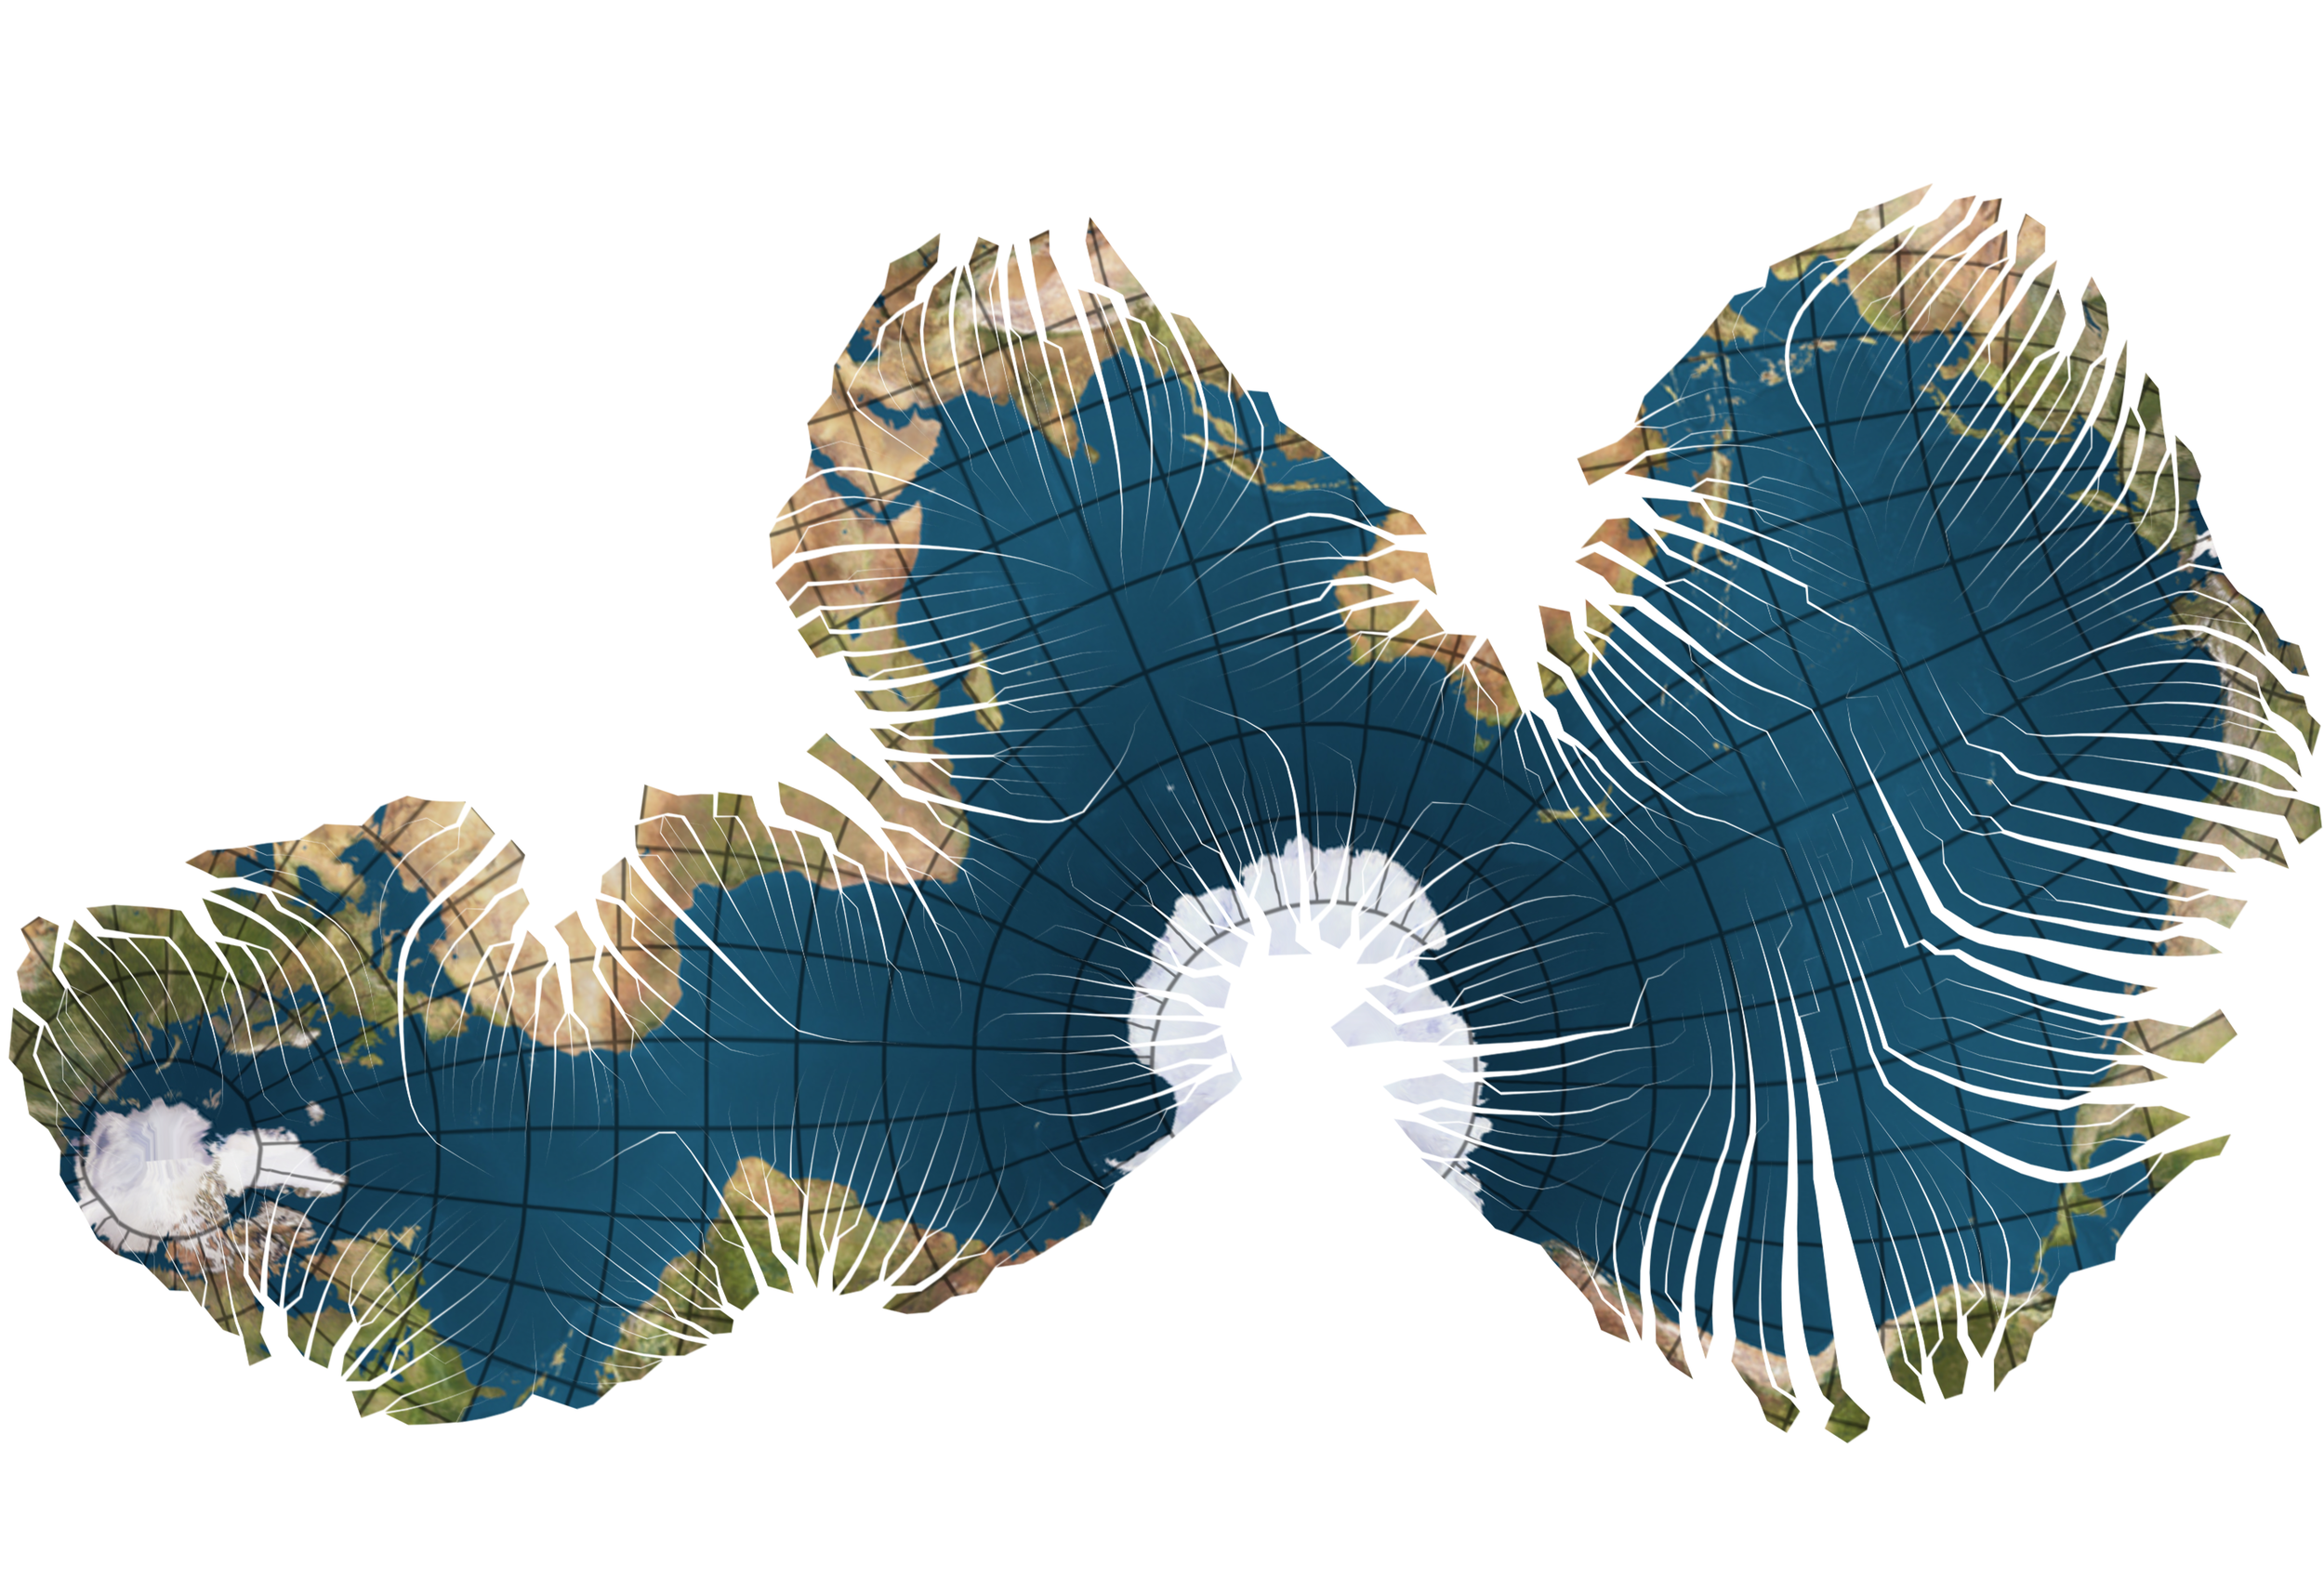 Myriahedral map projections (van Wijk, 2008) - a projection that shows the Earth's oceans.